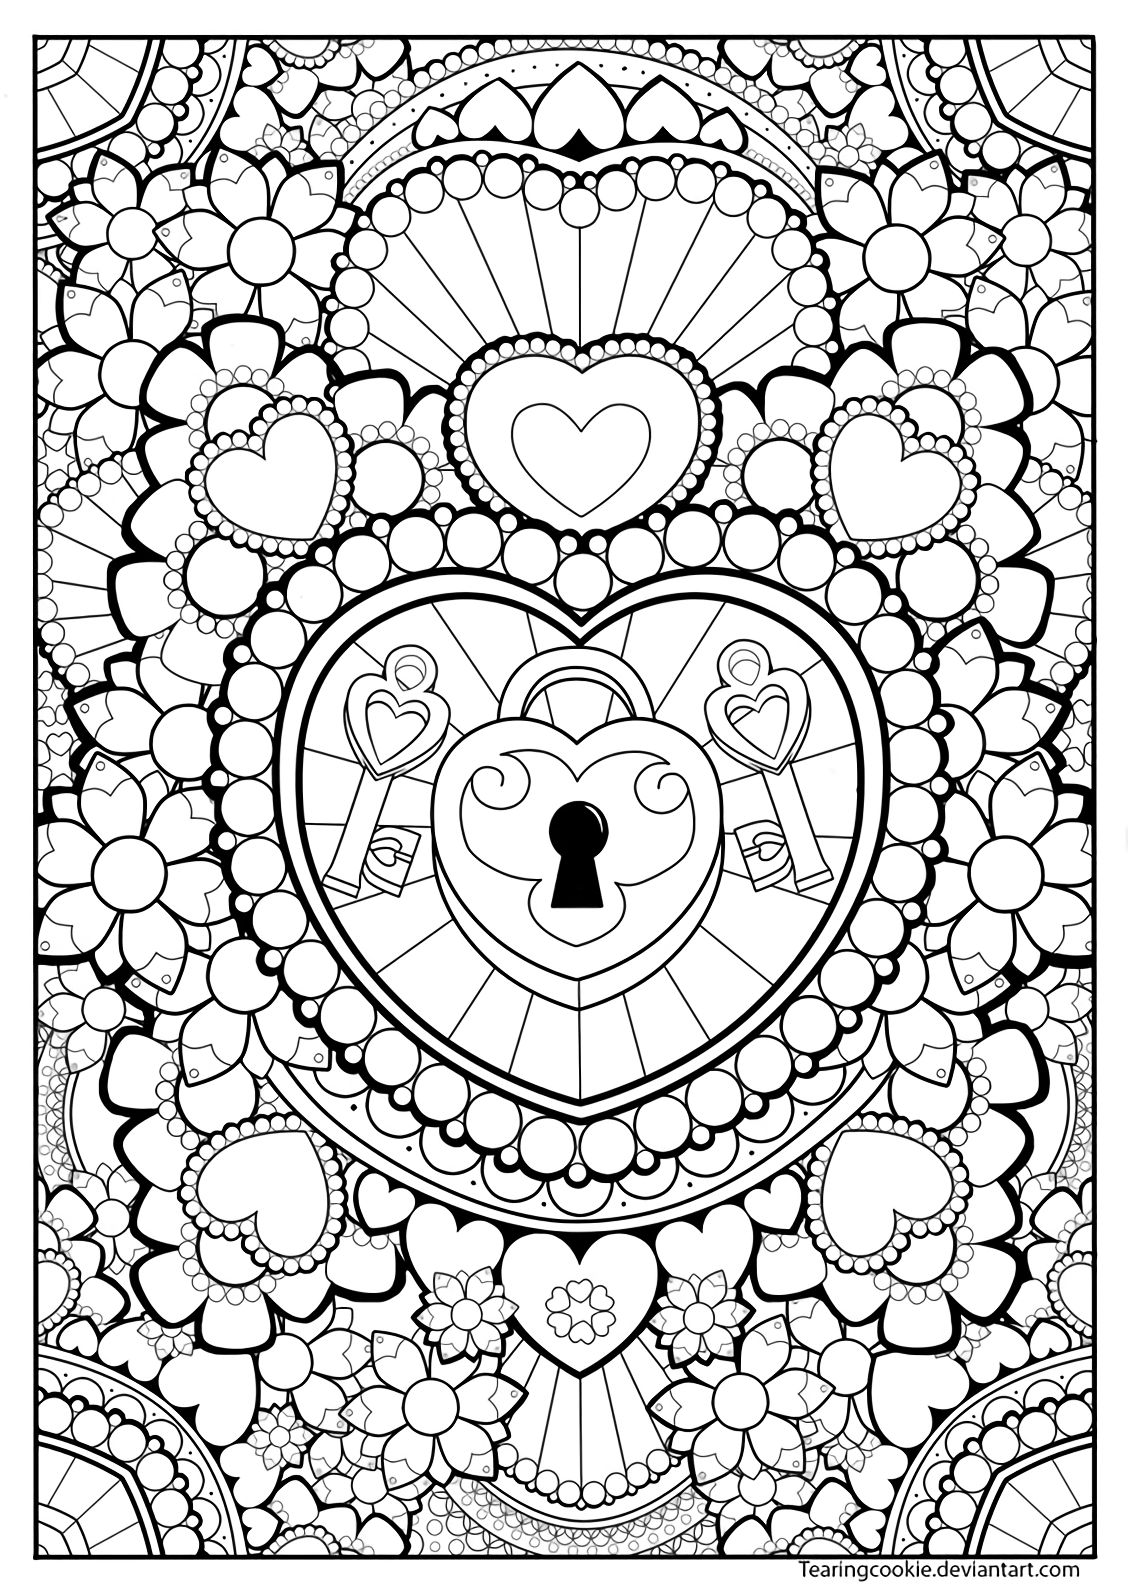 Lock Hearts Coloring Page   coloring pages   Pinterest   Adult ...